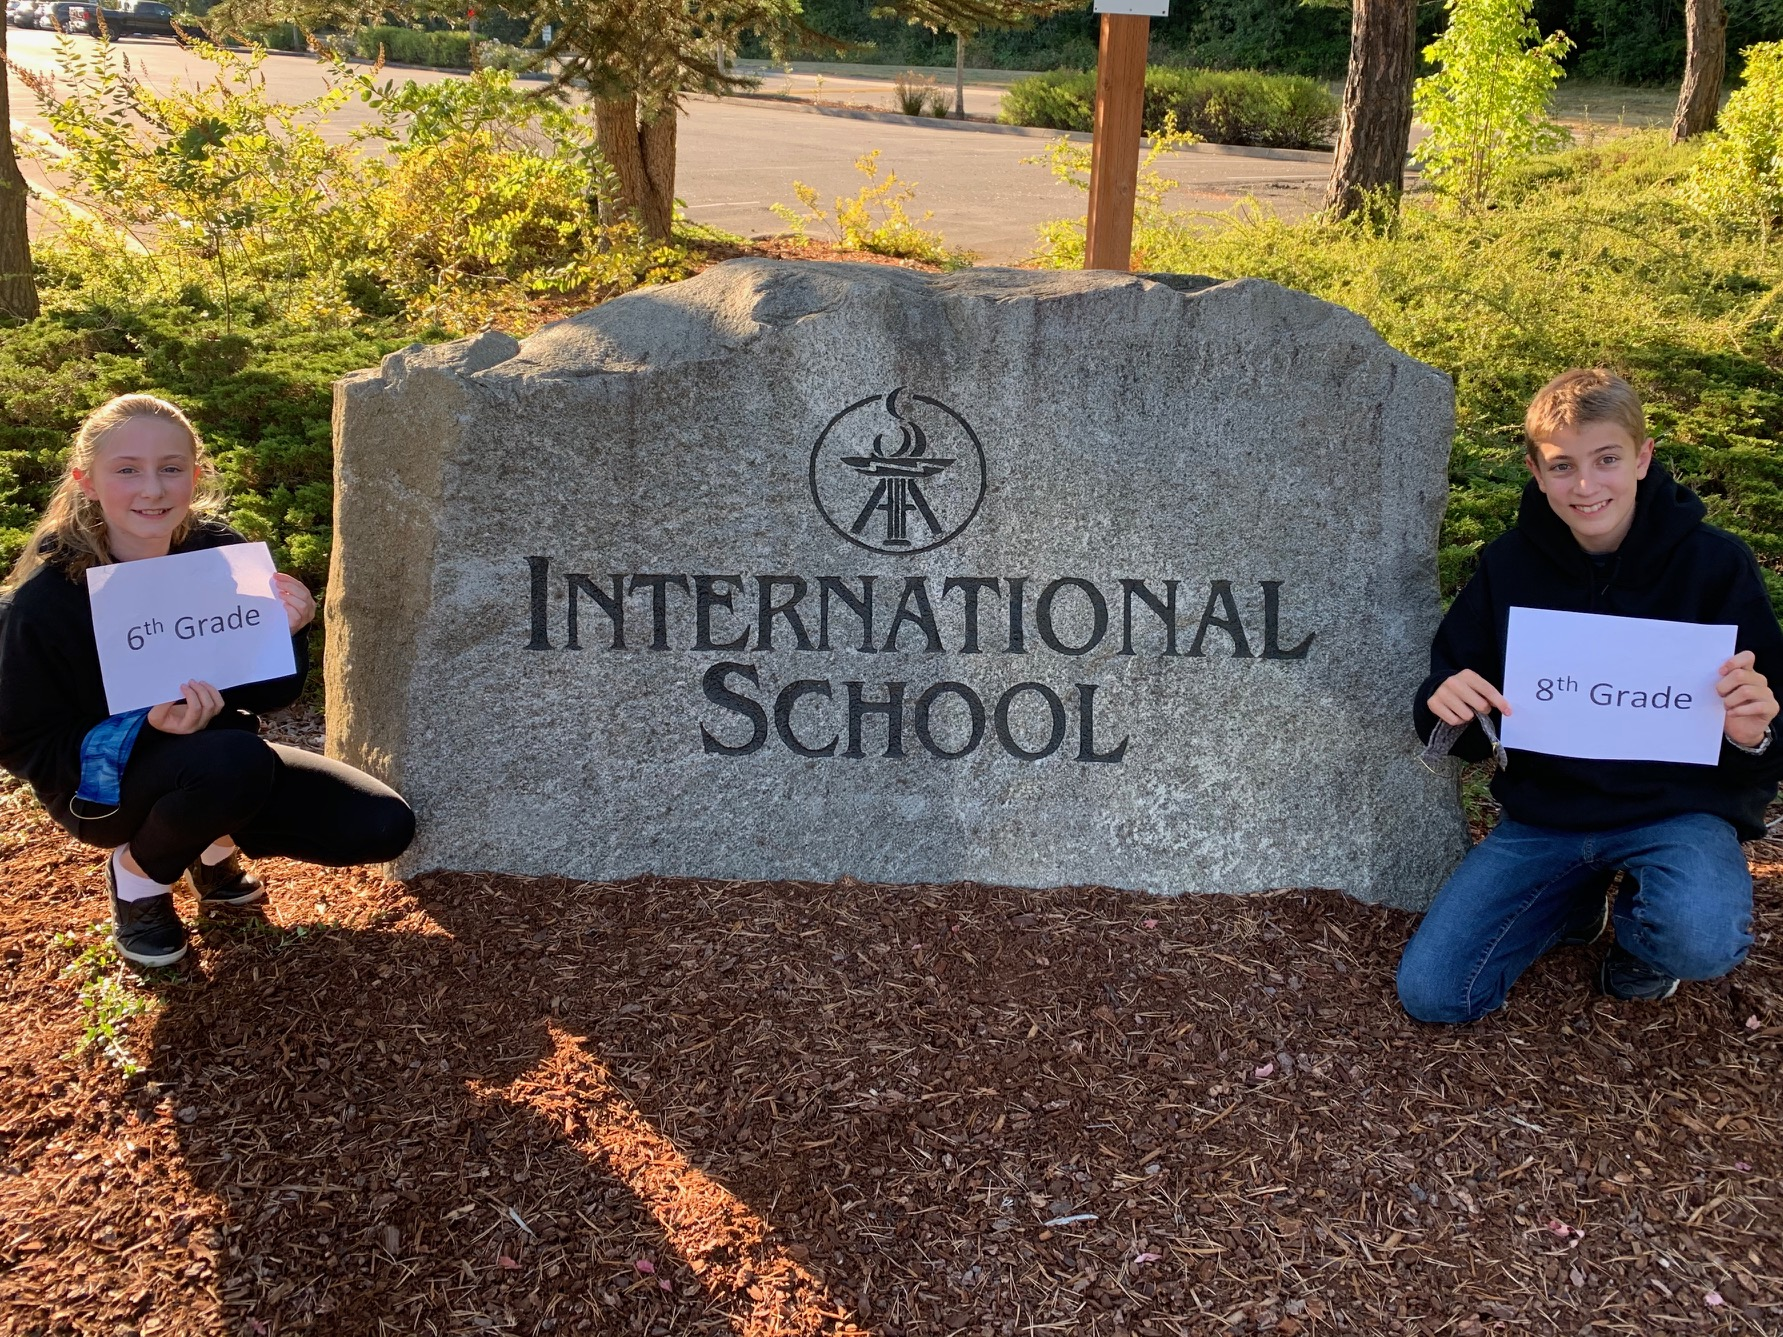 Students smiling in front of the International School sign